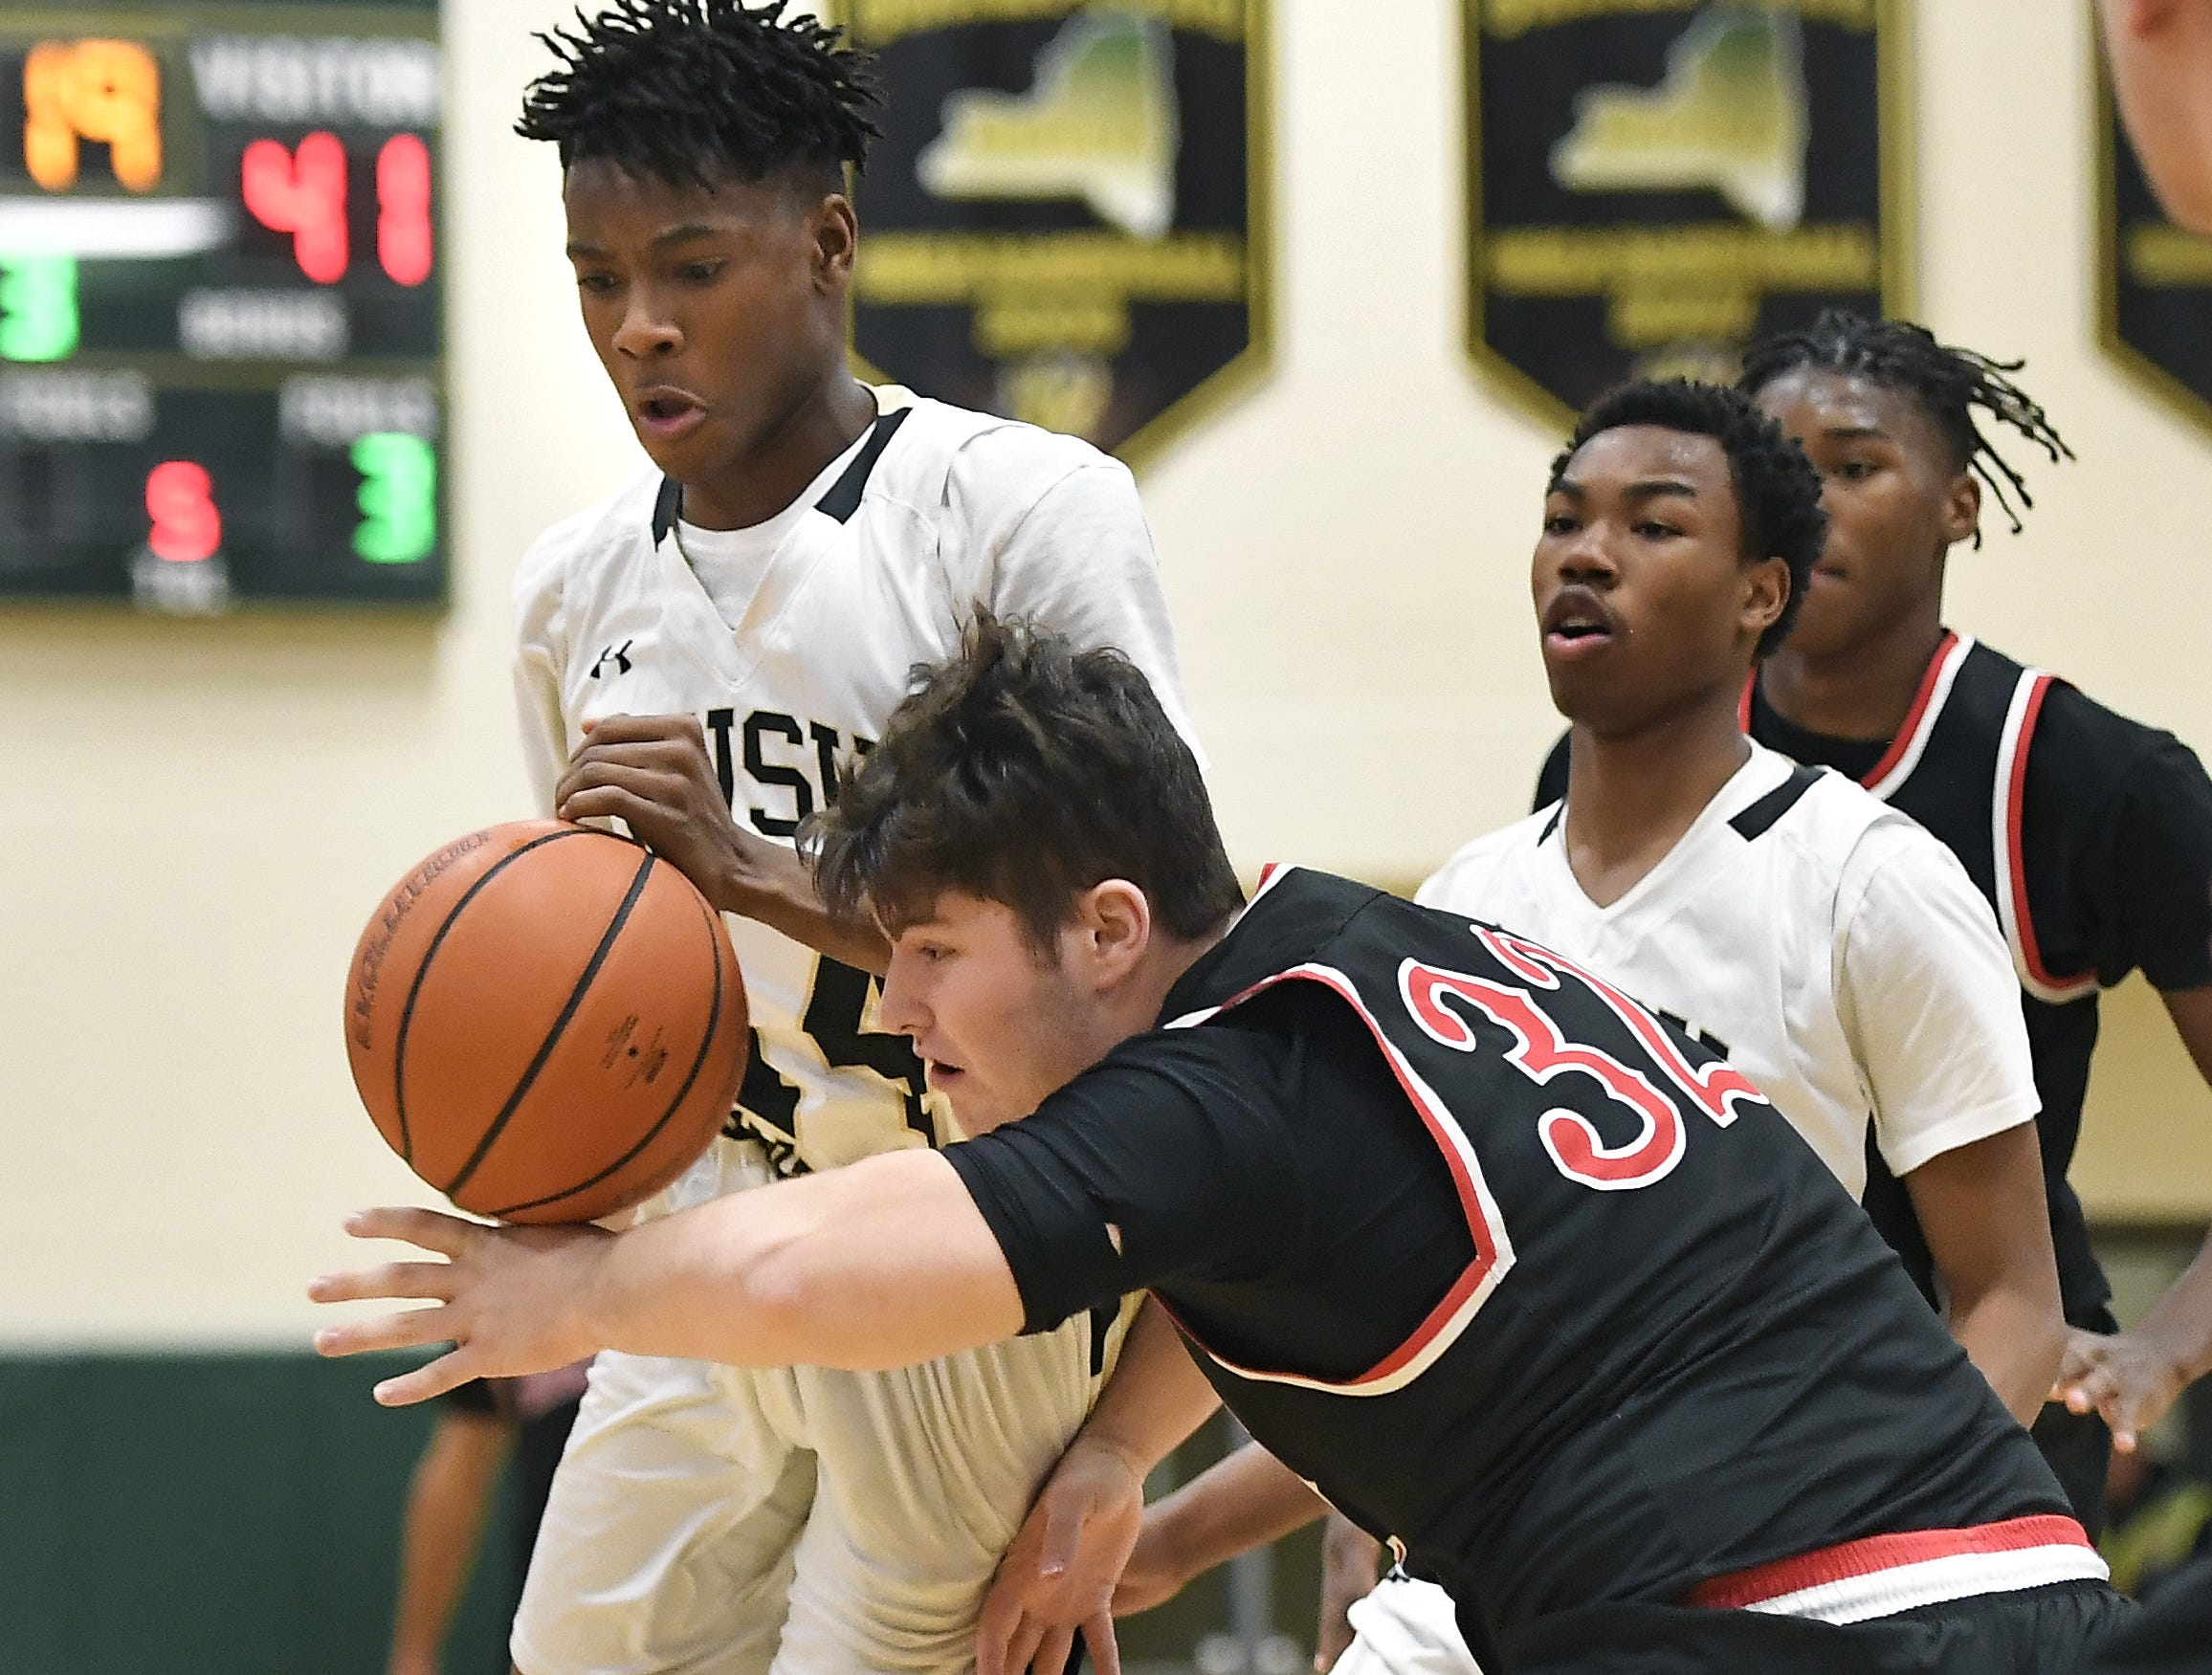 Rush-Henrietta's Eddie Beverly, left, and Hilton's Alex Mistretta reach for a loose ball during a regular season game played at Rush-Henrietta High School, Friday, Dec. 7, 2018. Hilton beat Rush-Henrietta 61-47.